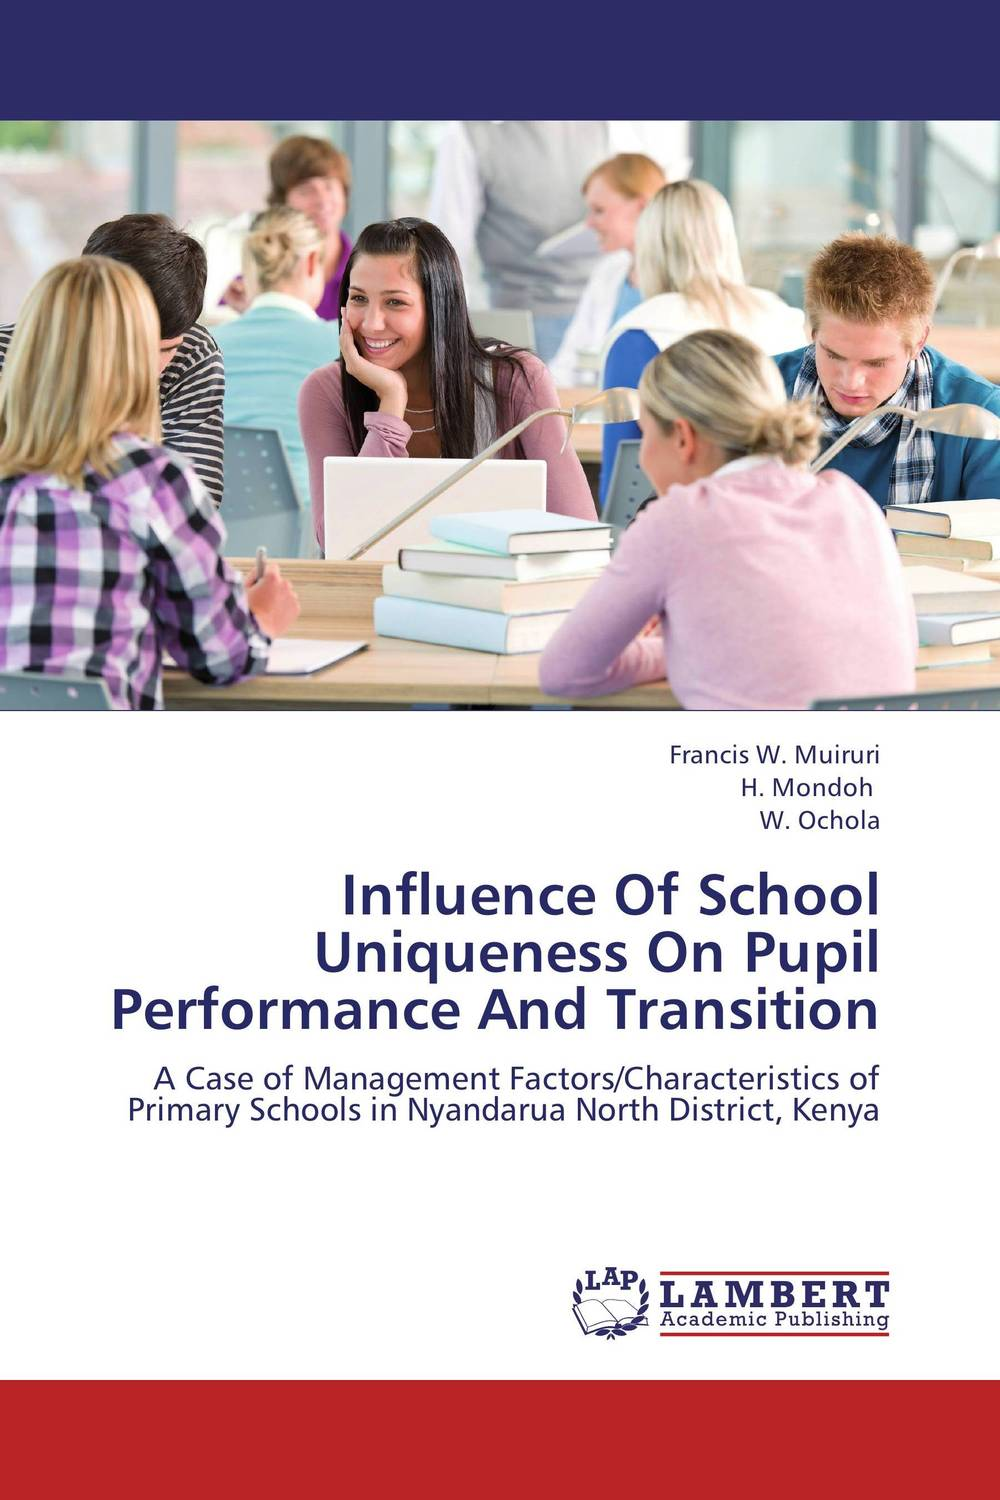 Influence Of School Uniqueness On Pupil Performance And Transition female head teachers administrative challenges in schools in kenya